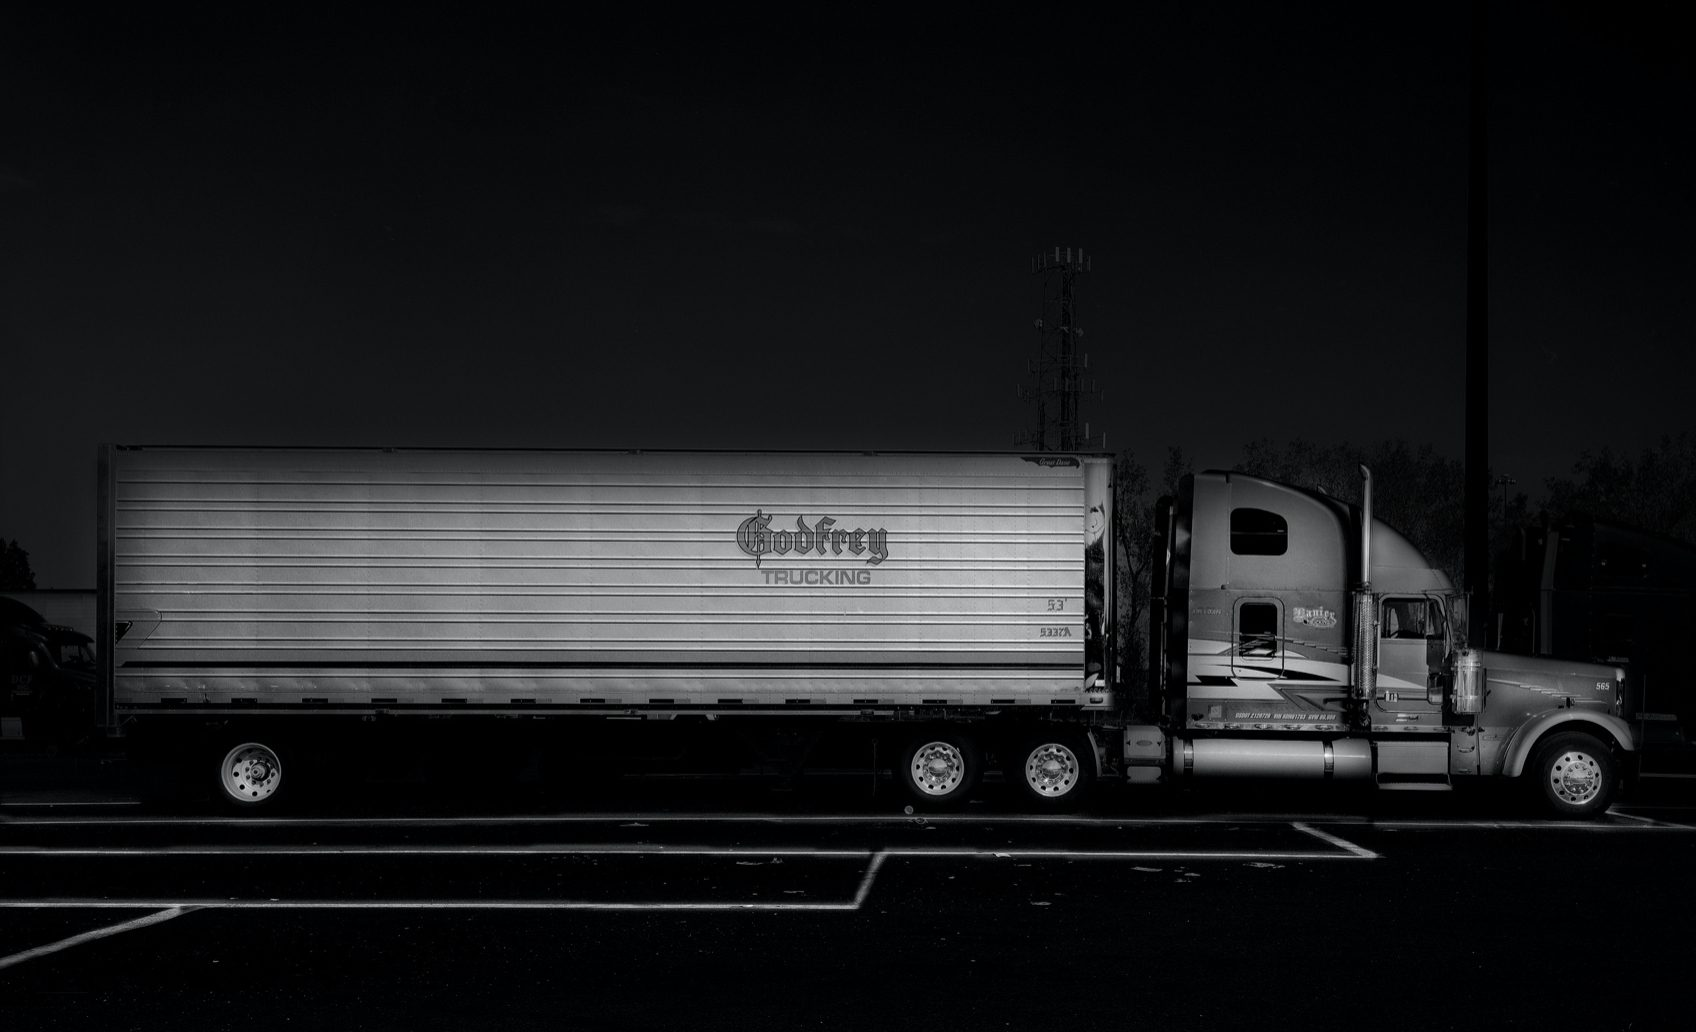 Seeing The Black Dog - Godfrey Trucking